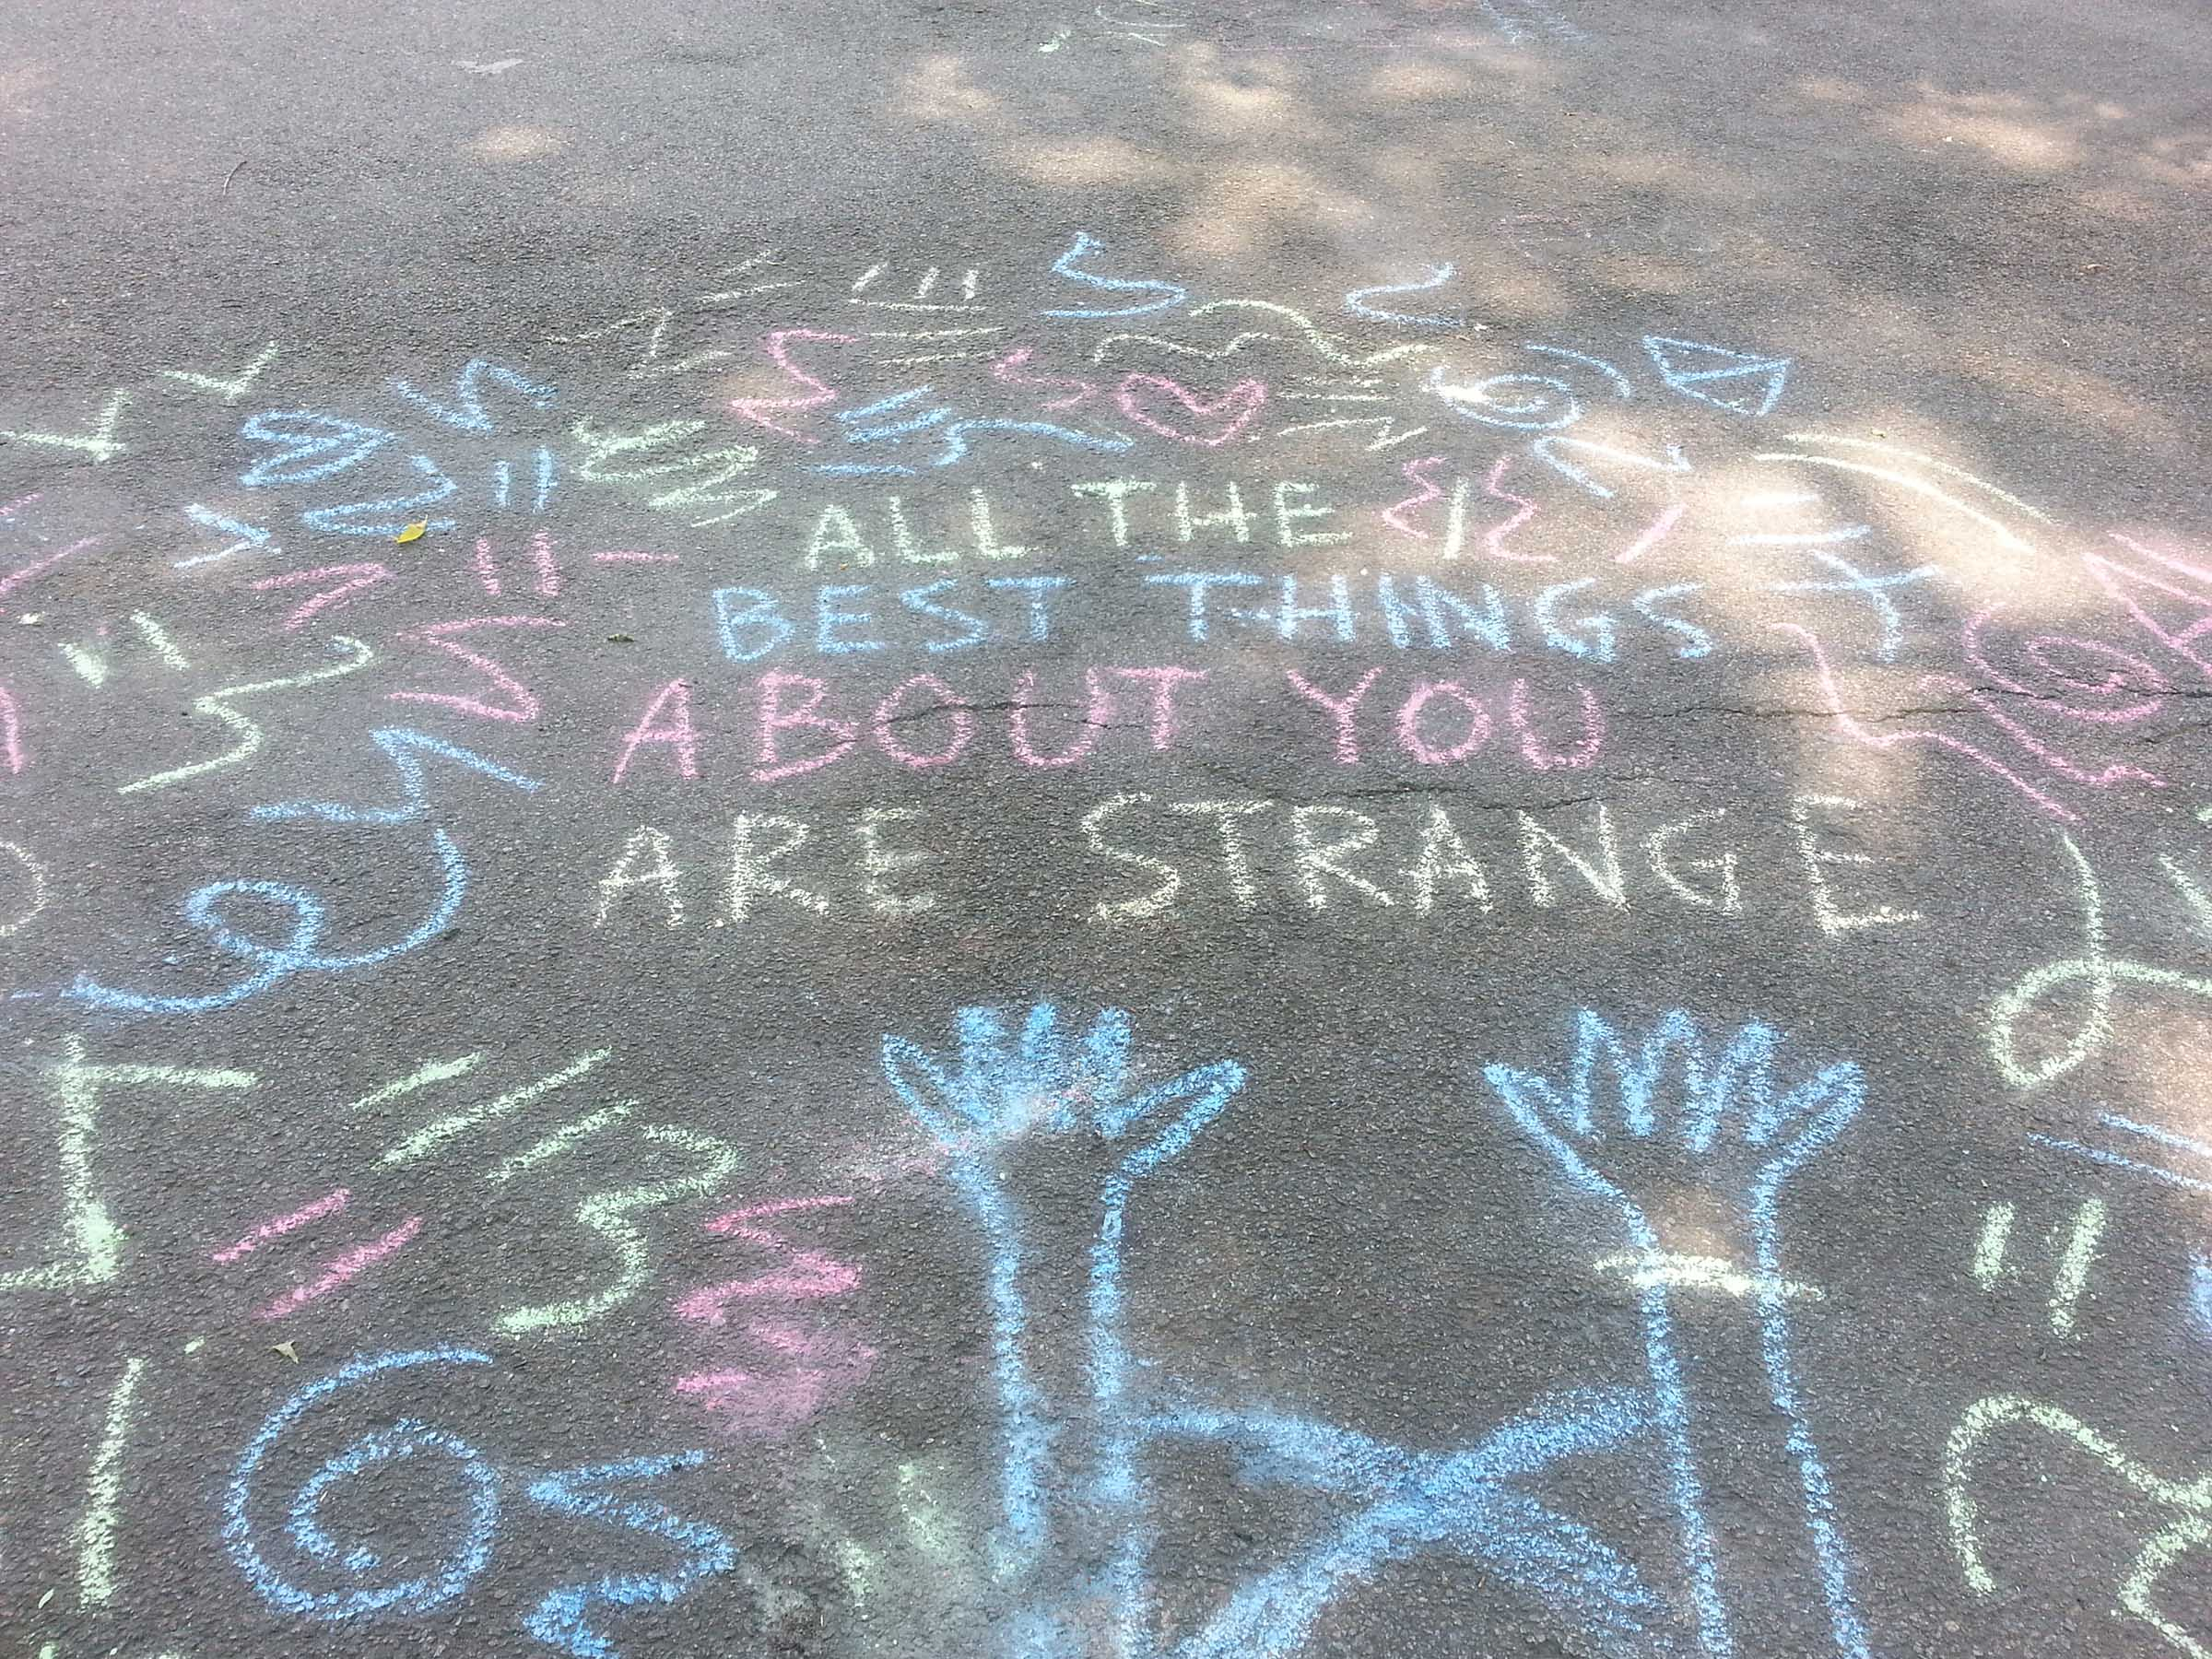 "Chalk art on pavement, in the shade with dappled sunlight. Upstretched arms reach toward the words ""ALL THE BEST THINGS ABOUT YOU ARE STRANGE"", surrounded by squiggly designs in blue, pink, and yellow."